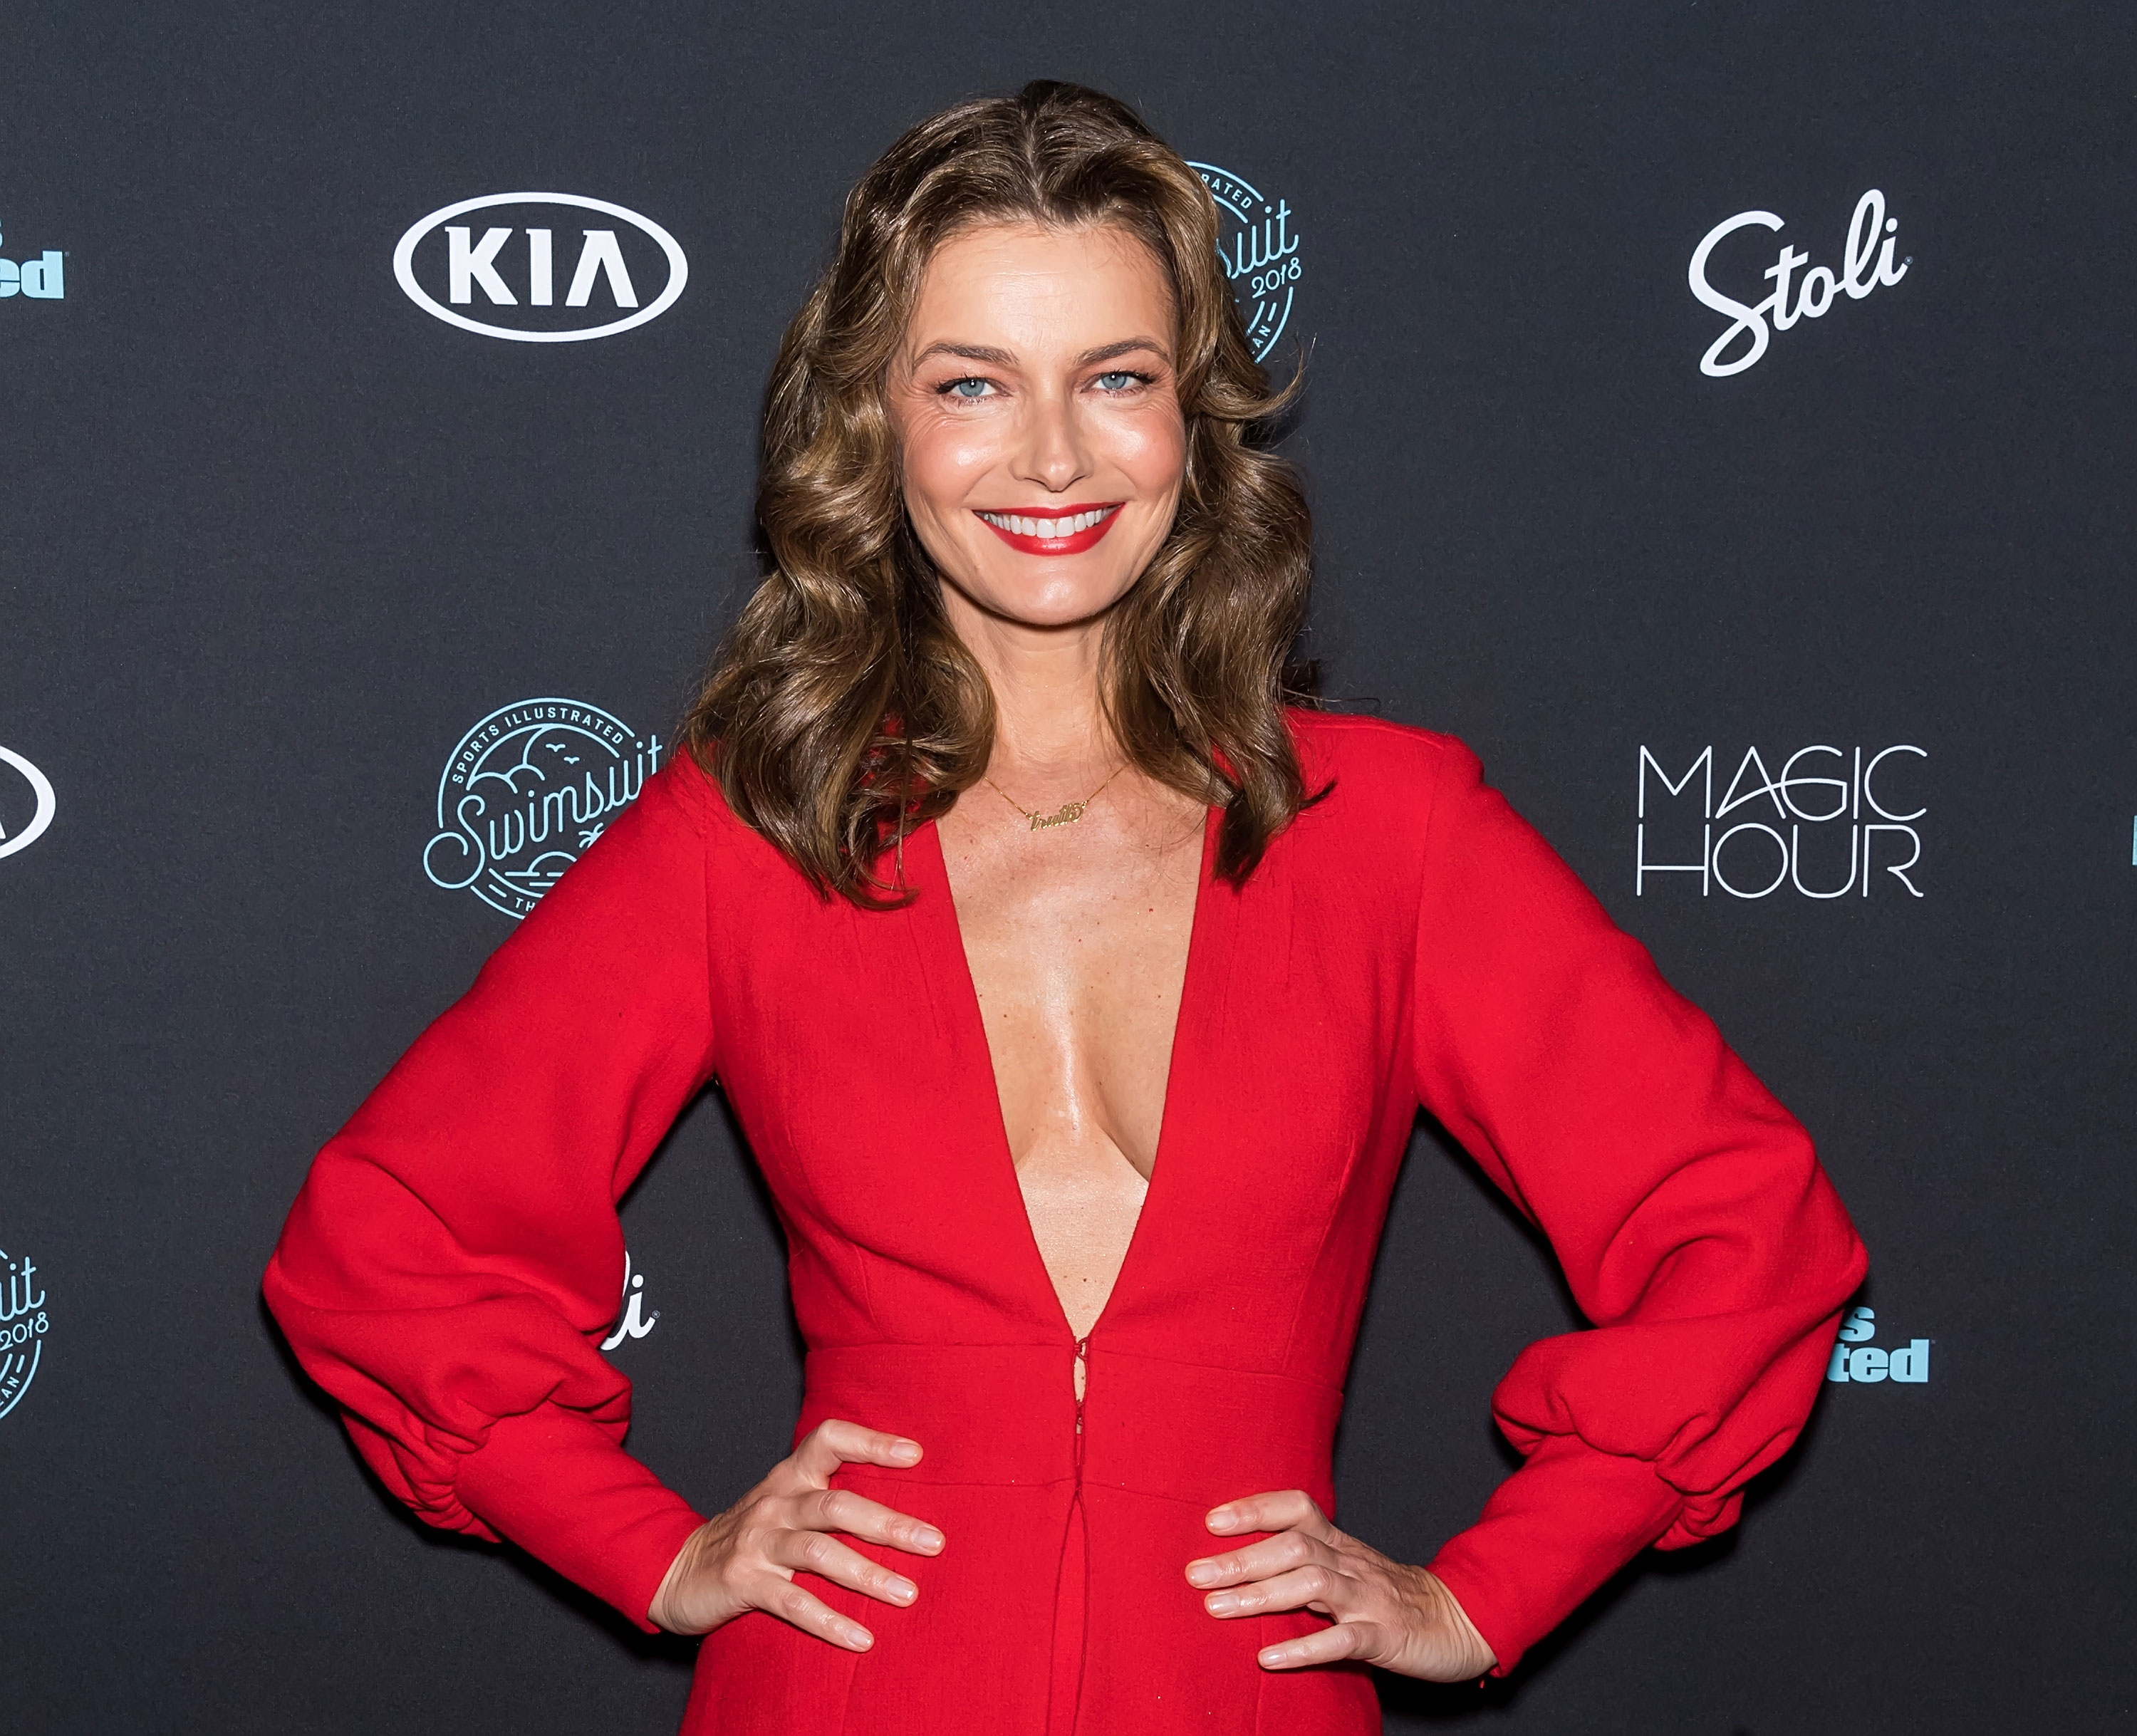 Paulina Porizkova didn't need photoshop to land on the cover of Vogue Czechoslovakia